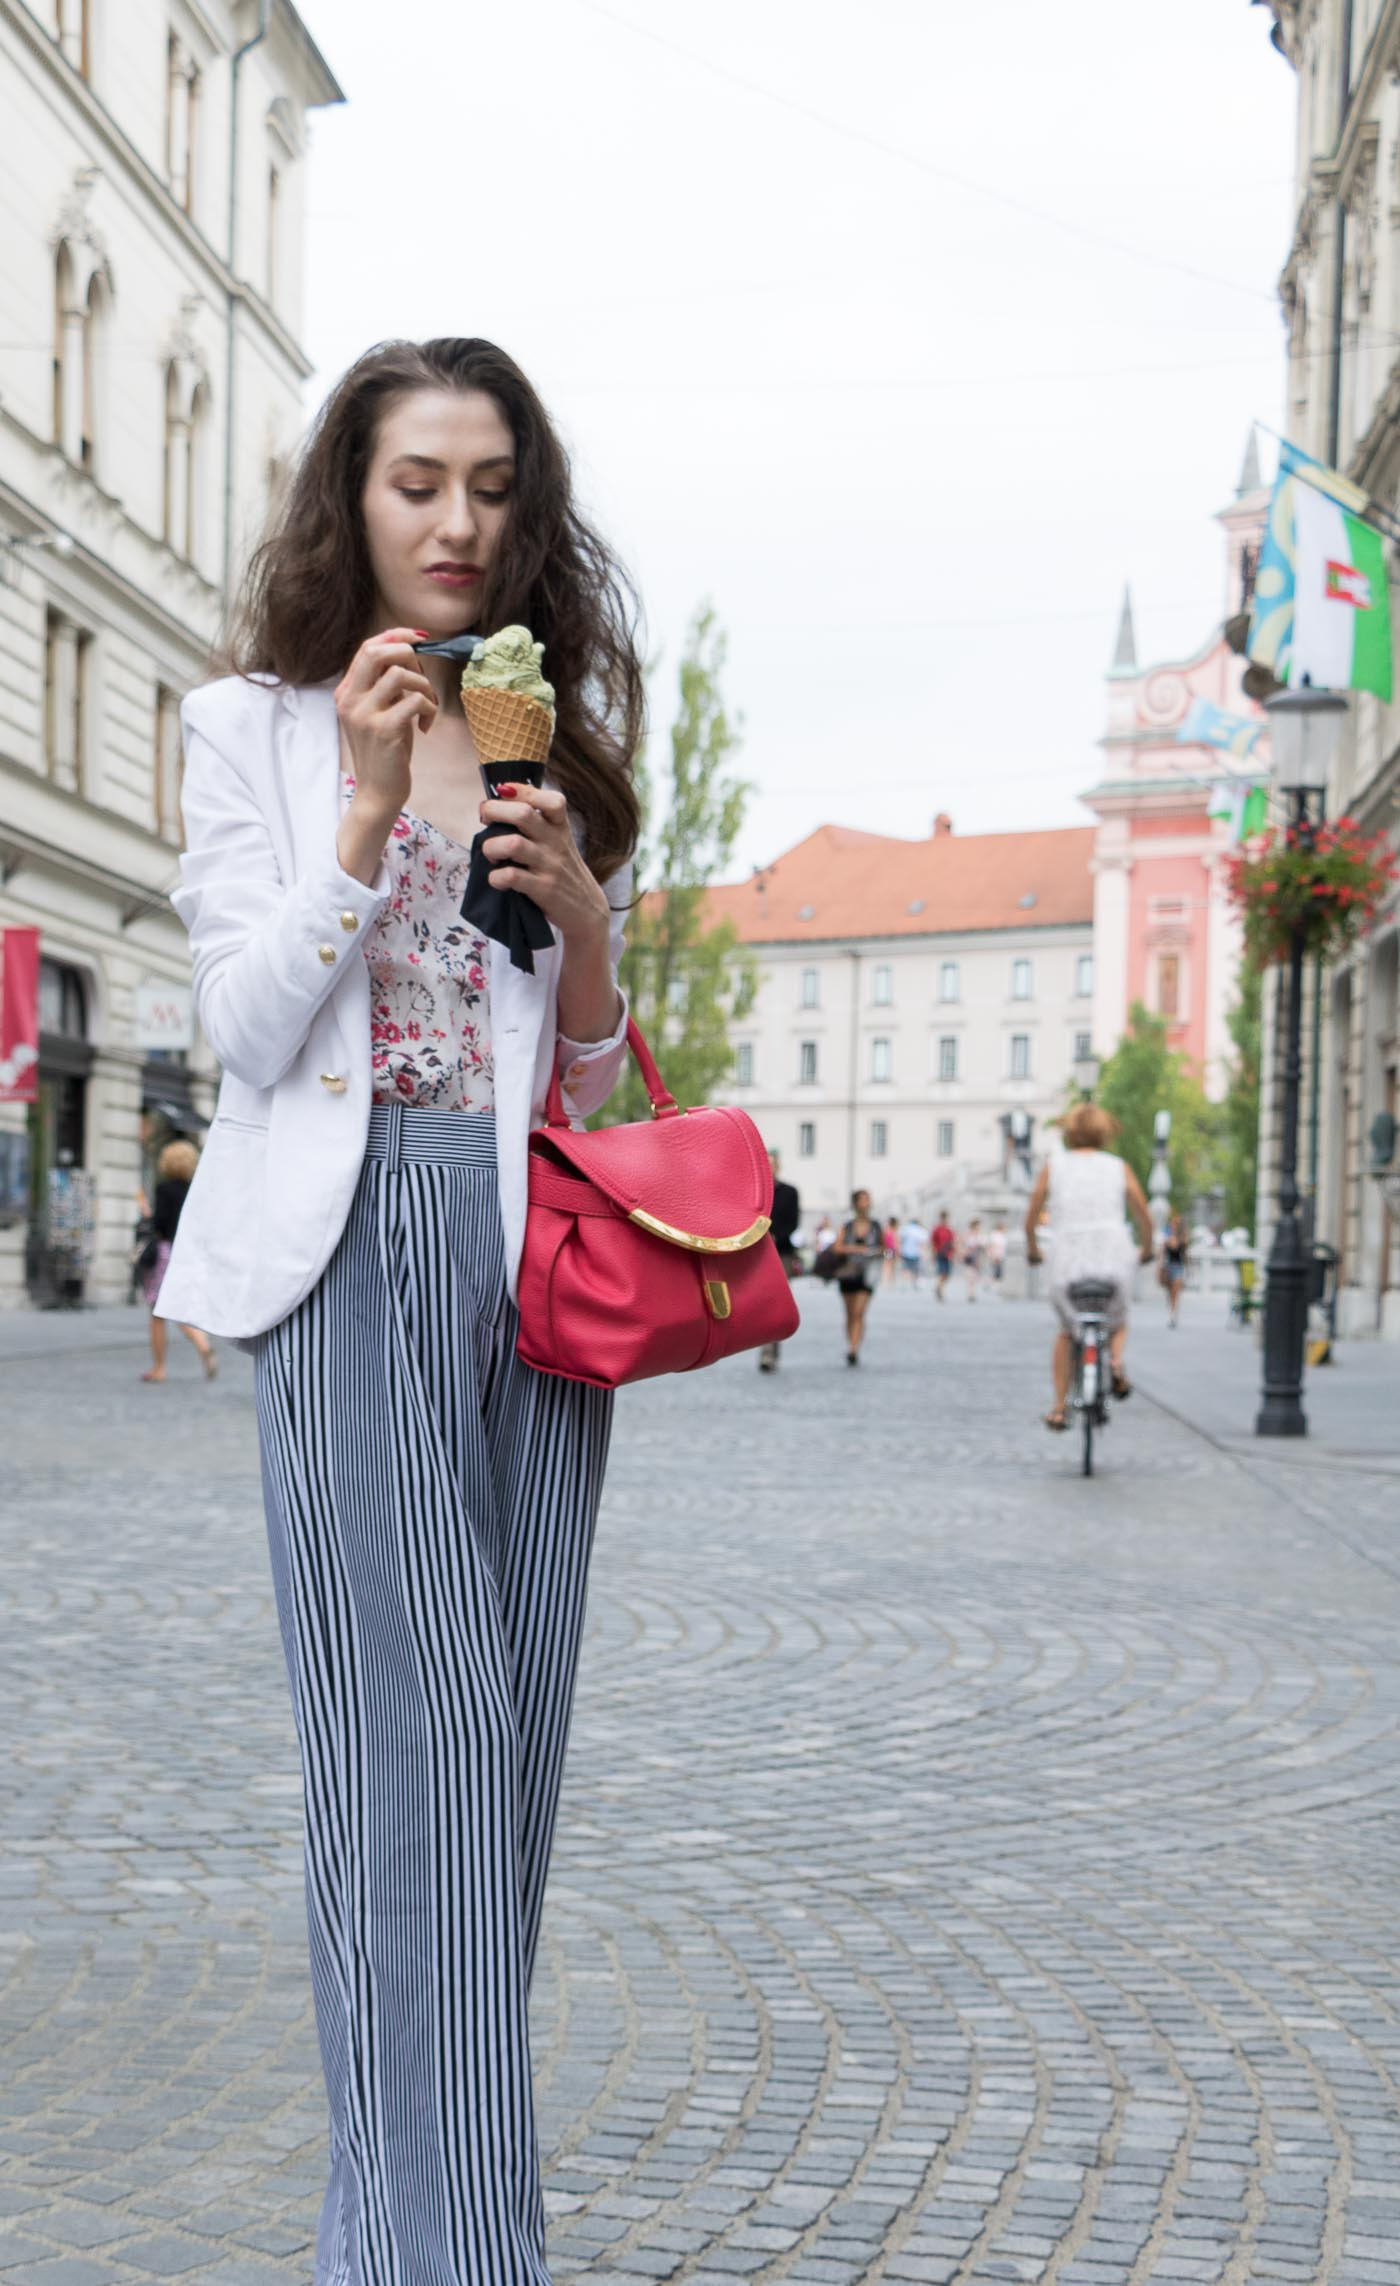 Fashion Blogger Veronika Lipar of Brunette from Wall Street eating pistachio ice cream on the street dressed in wide-leg striped Michael Kors trousers, white blazer, floral slip top from Stella McCartney and blue Aquazzura sandals